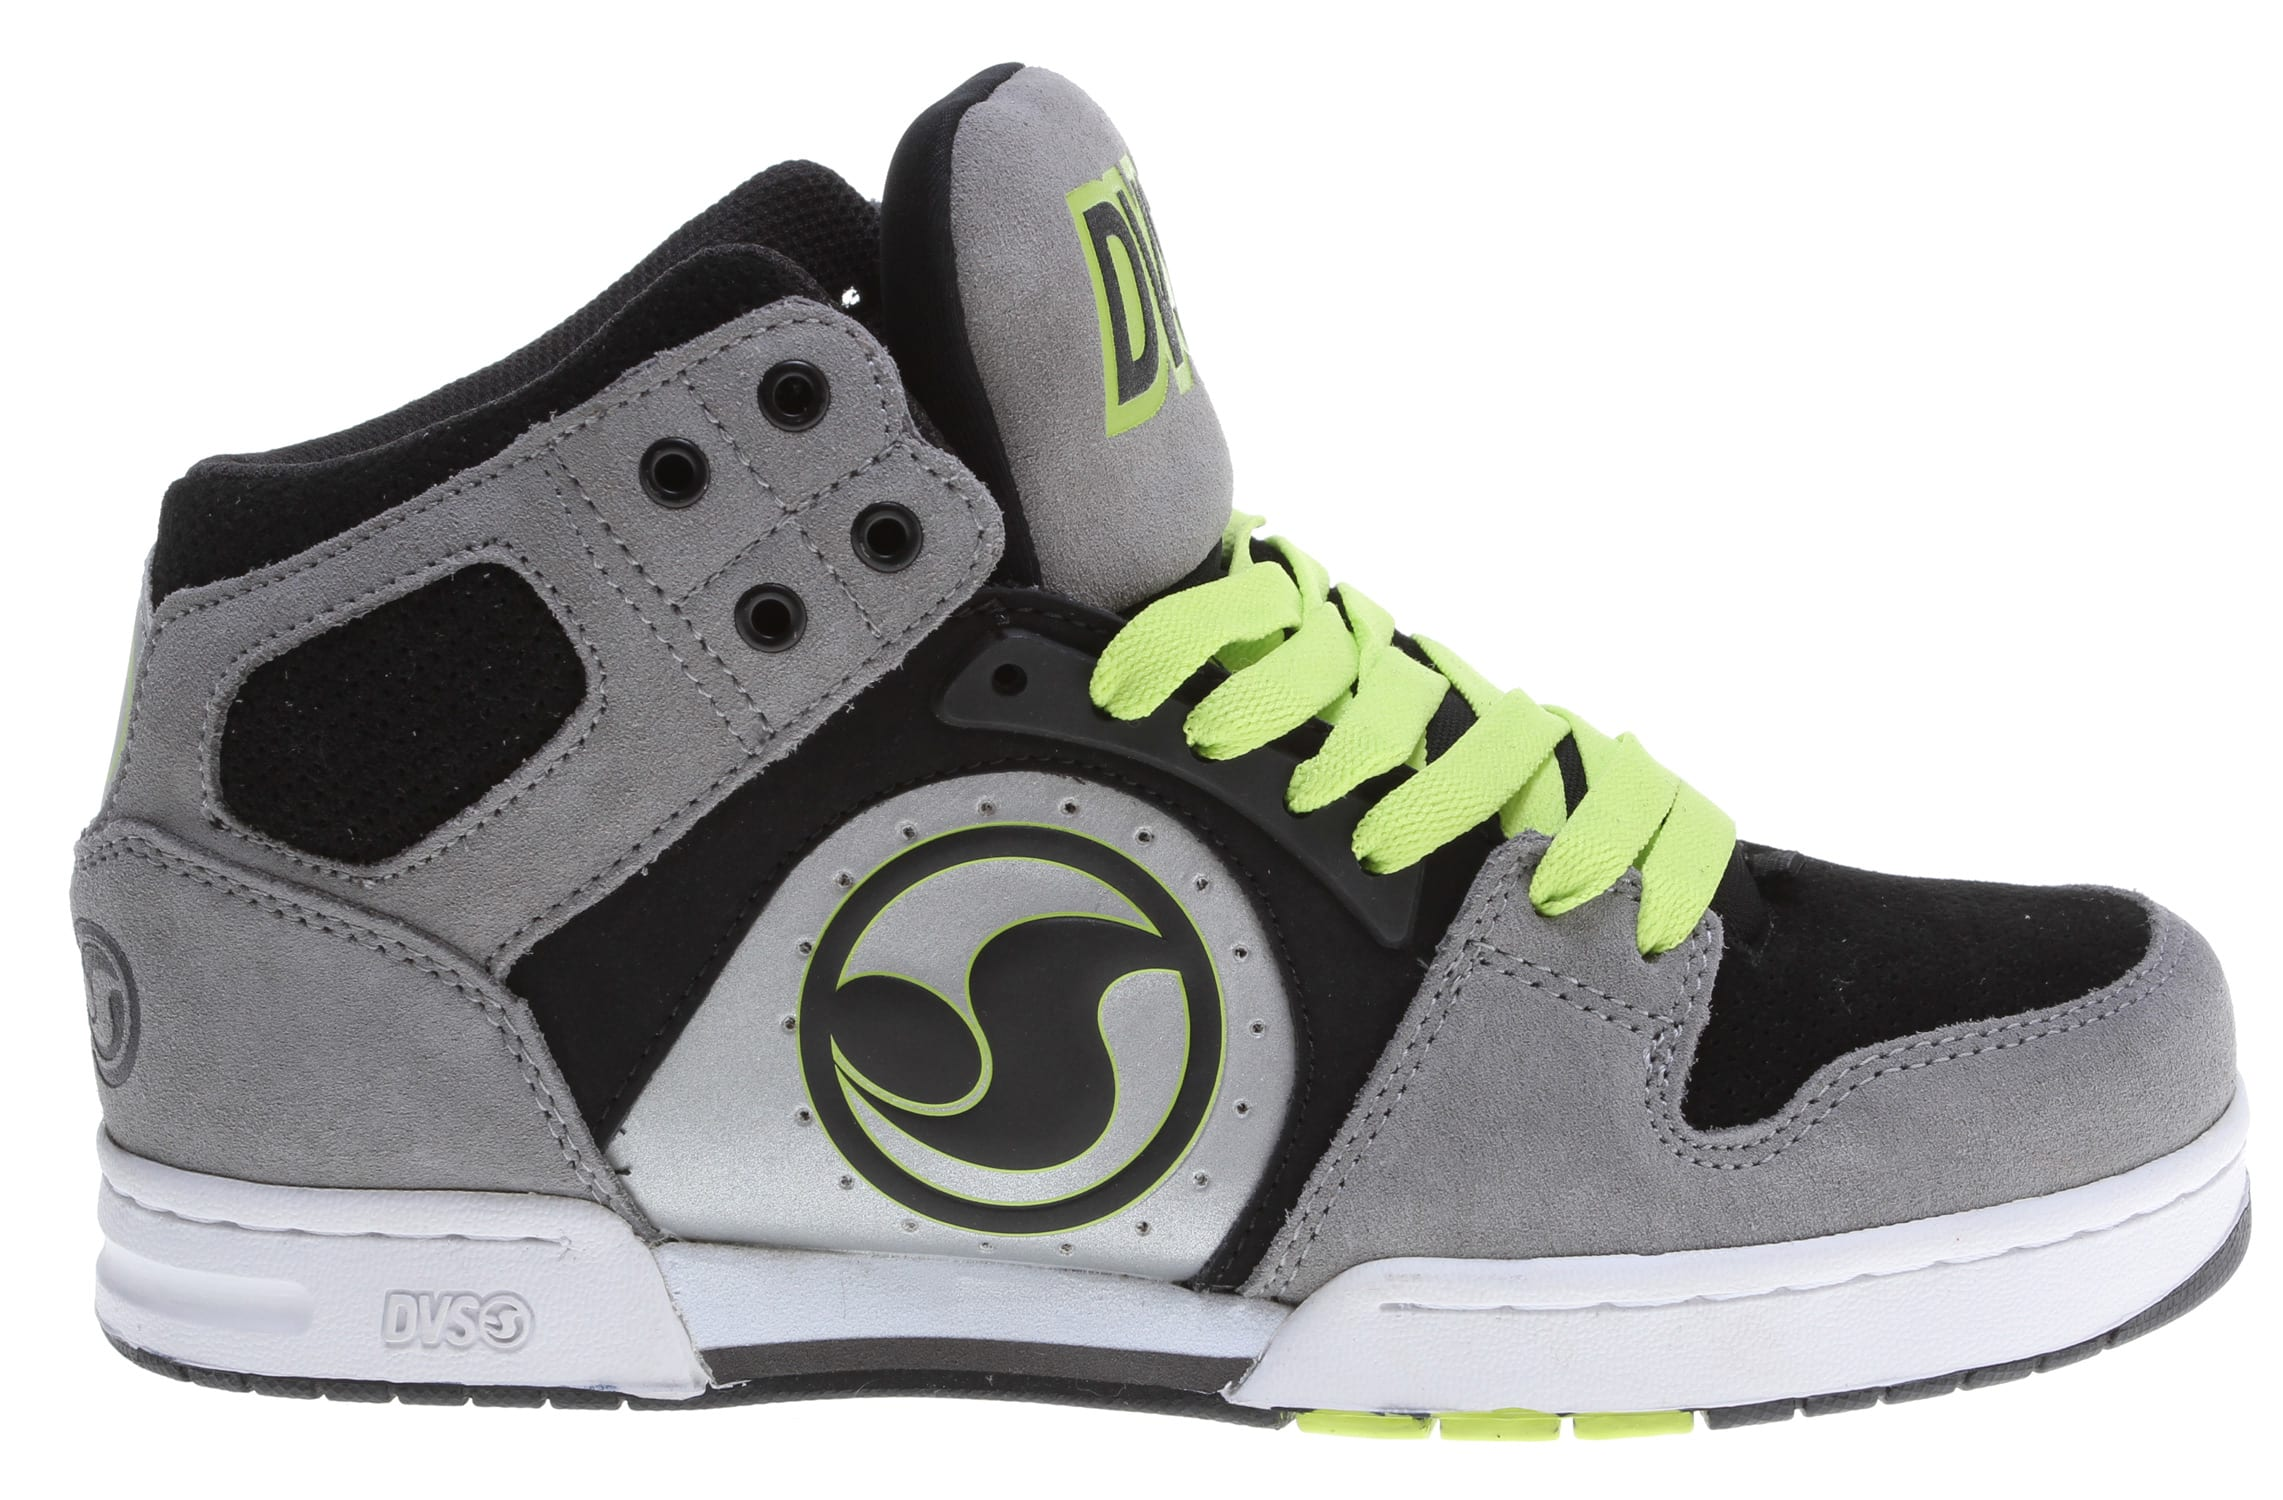 DVS Rogers Skate Shoe - ExtremeGear.com Sports Equipment Outlet